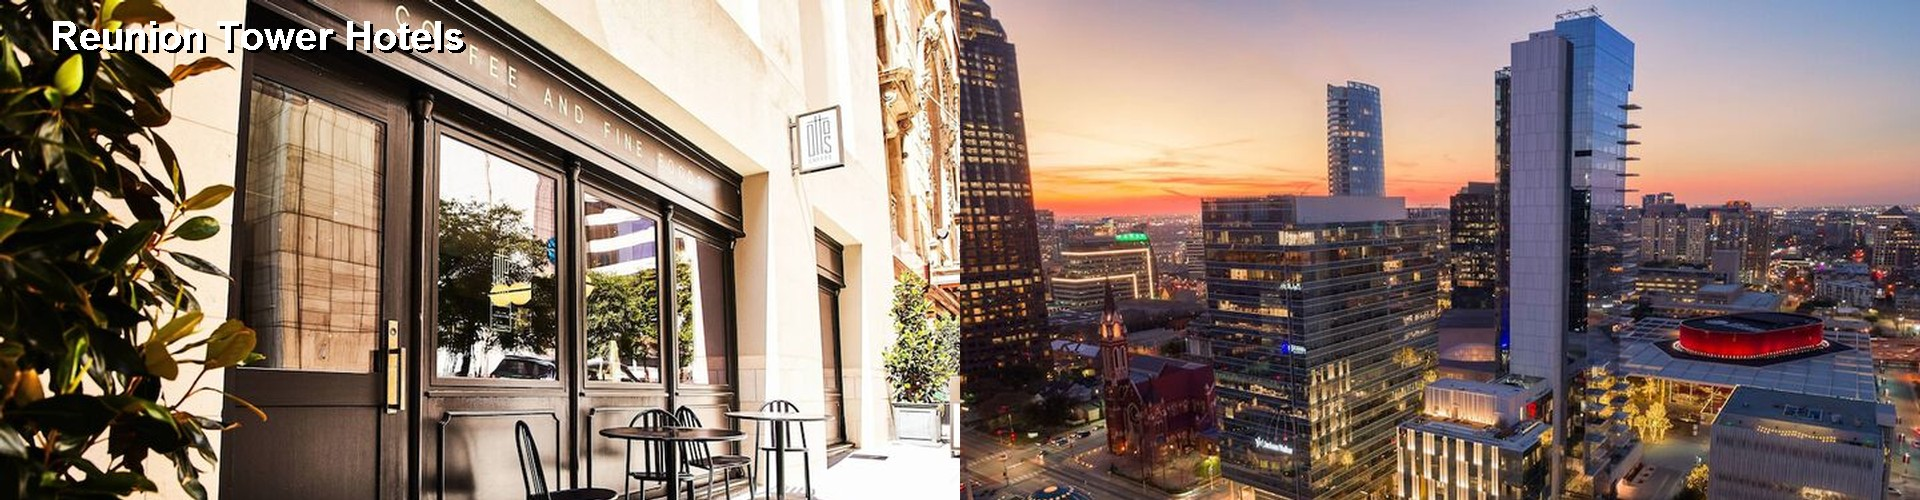 5 Best Hotels near Reunion Tower